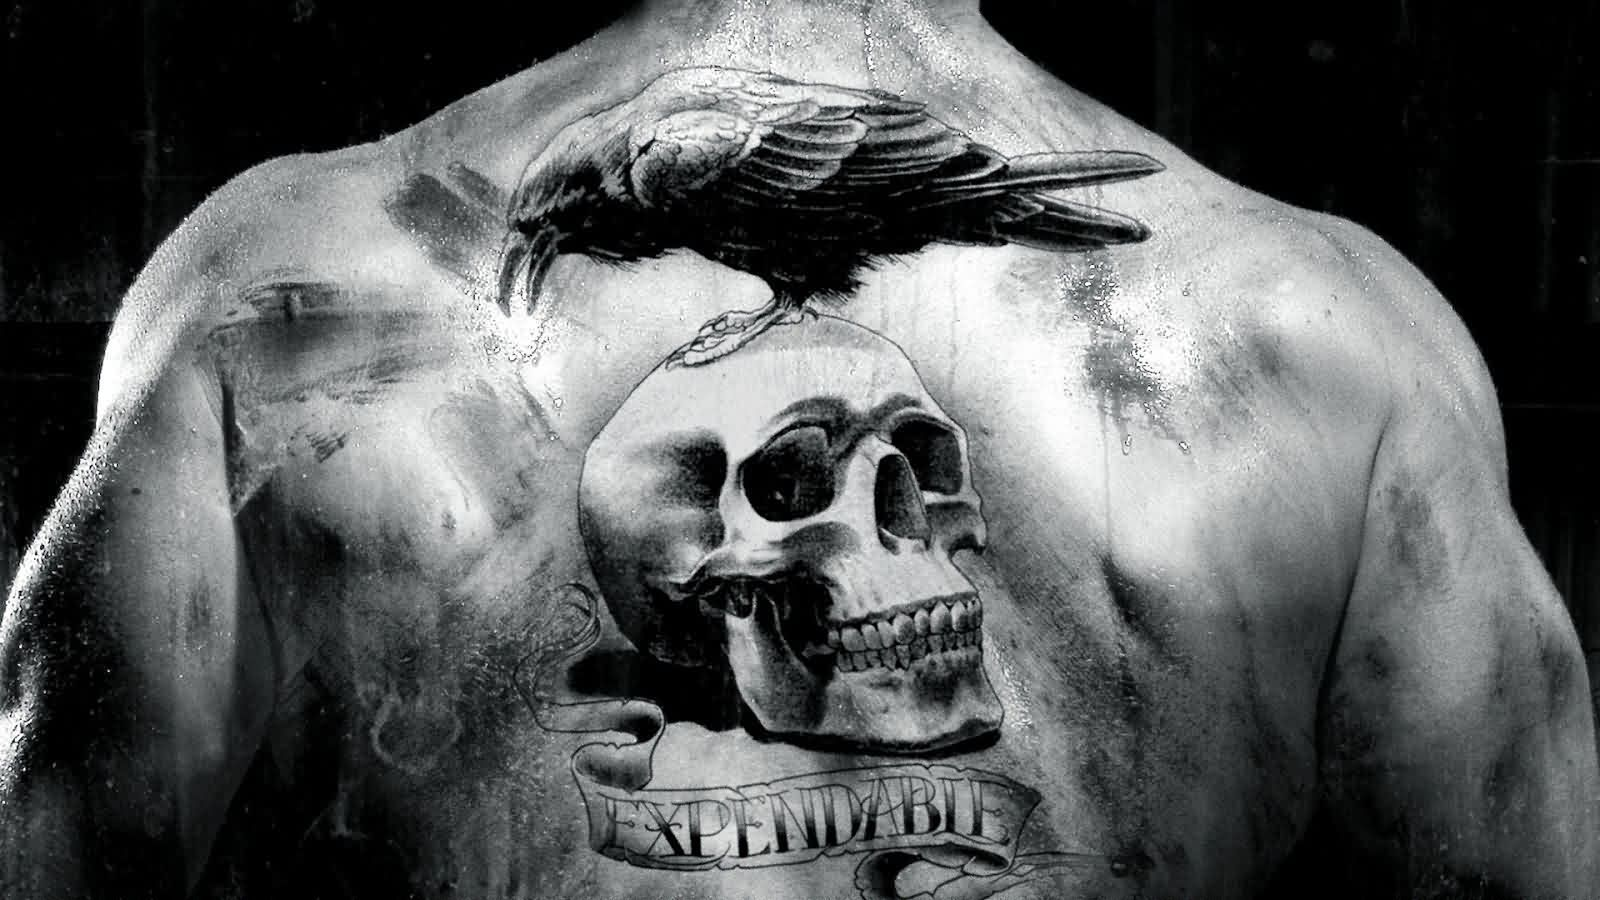 Expendable Crow Skull Tattoo